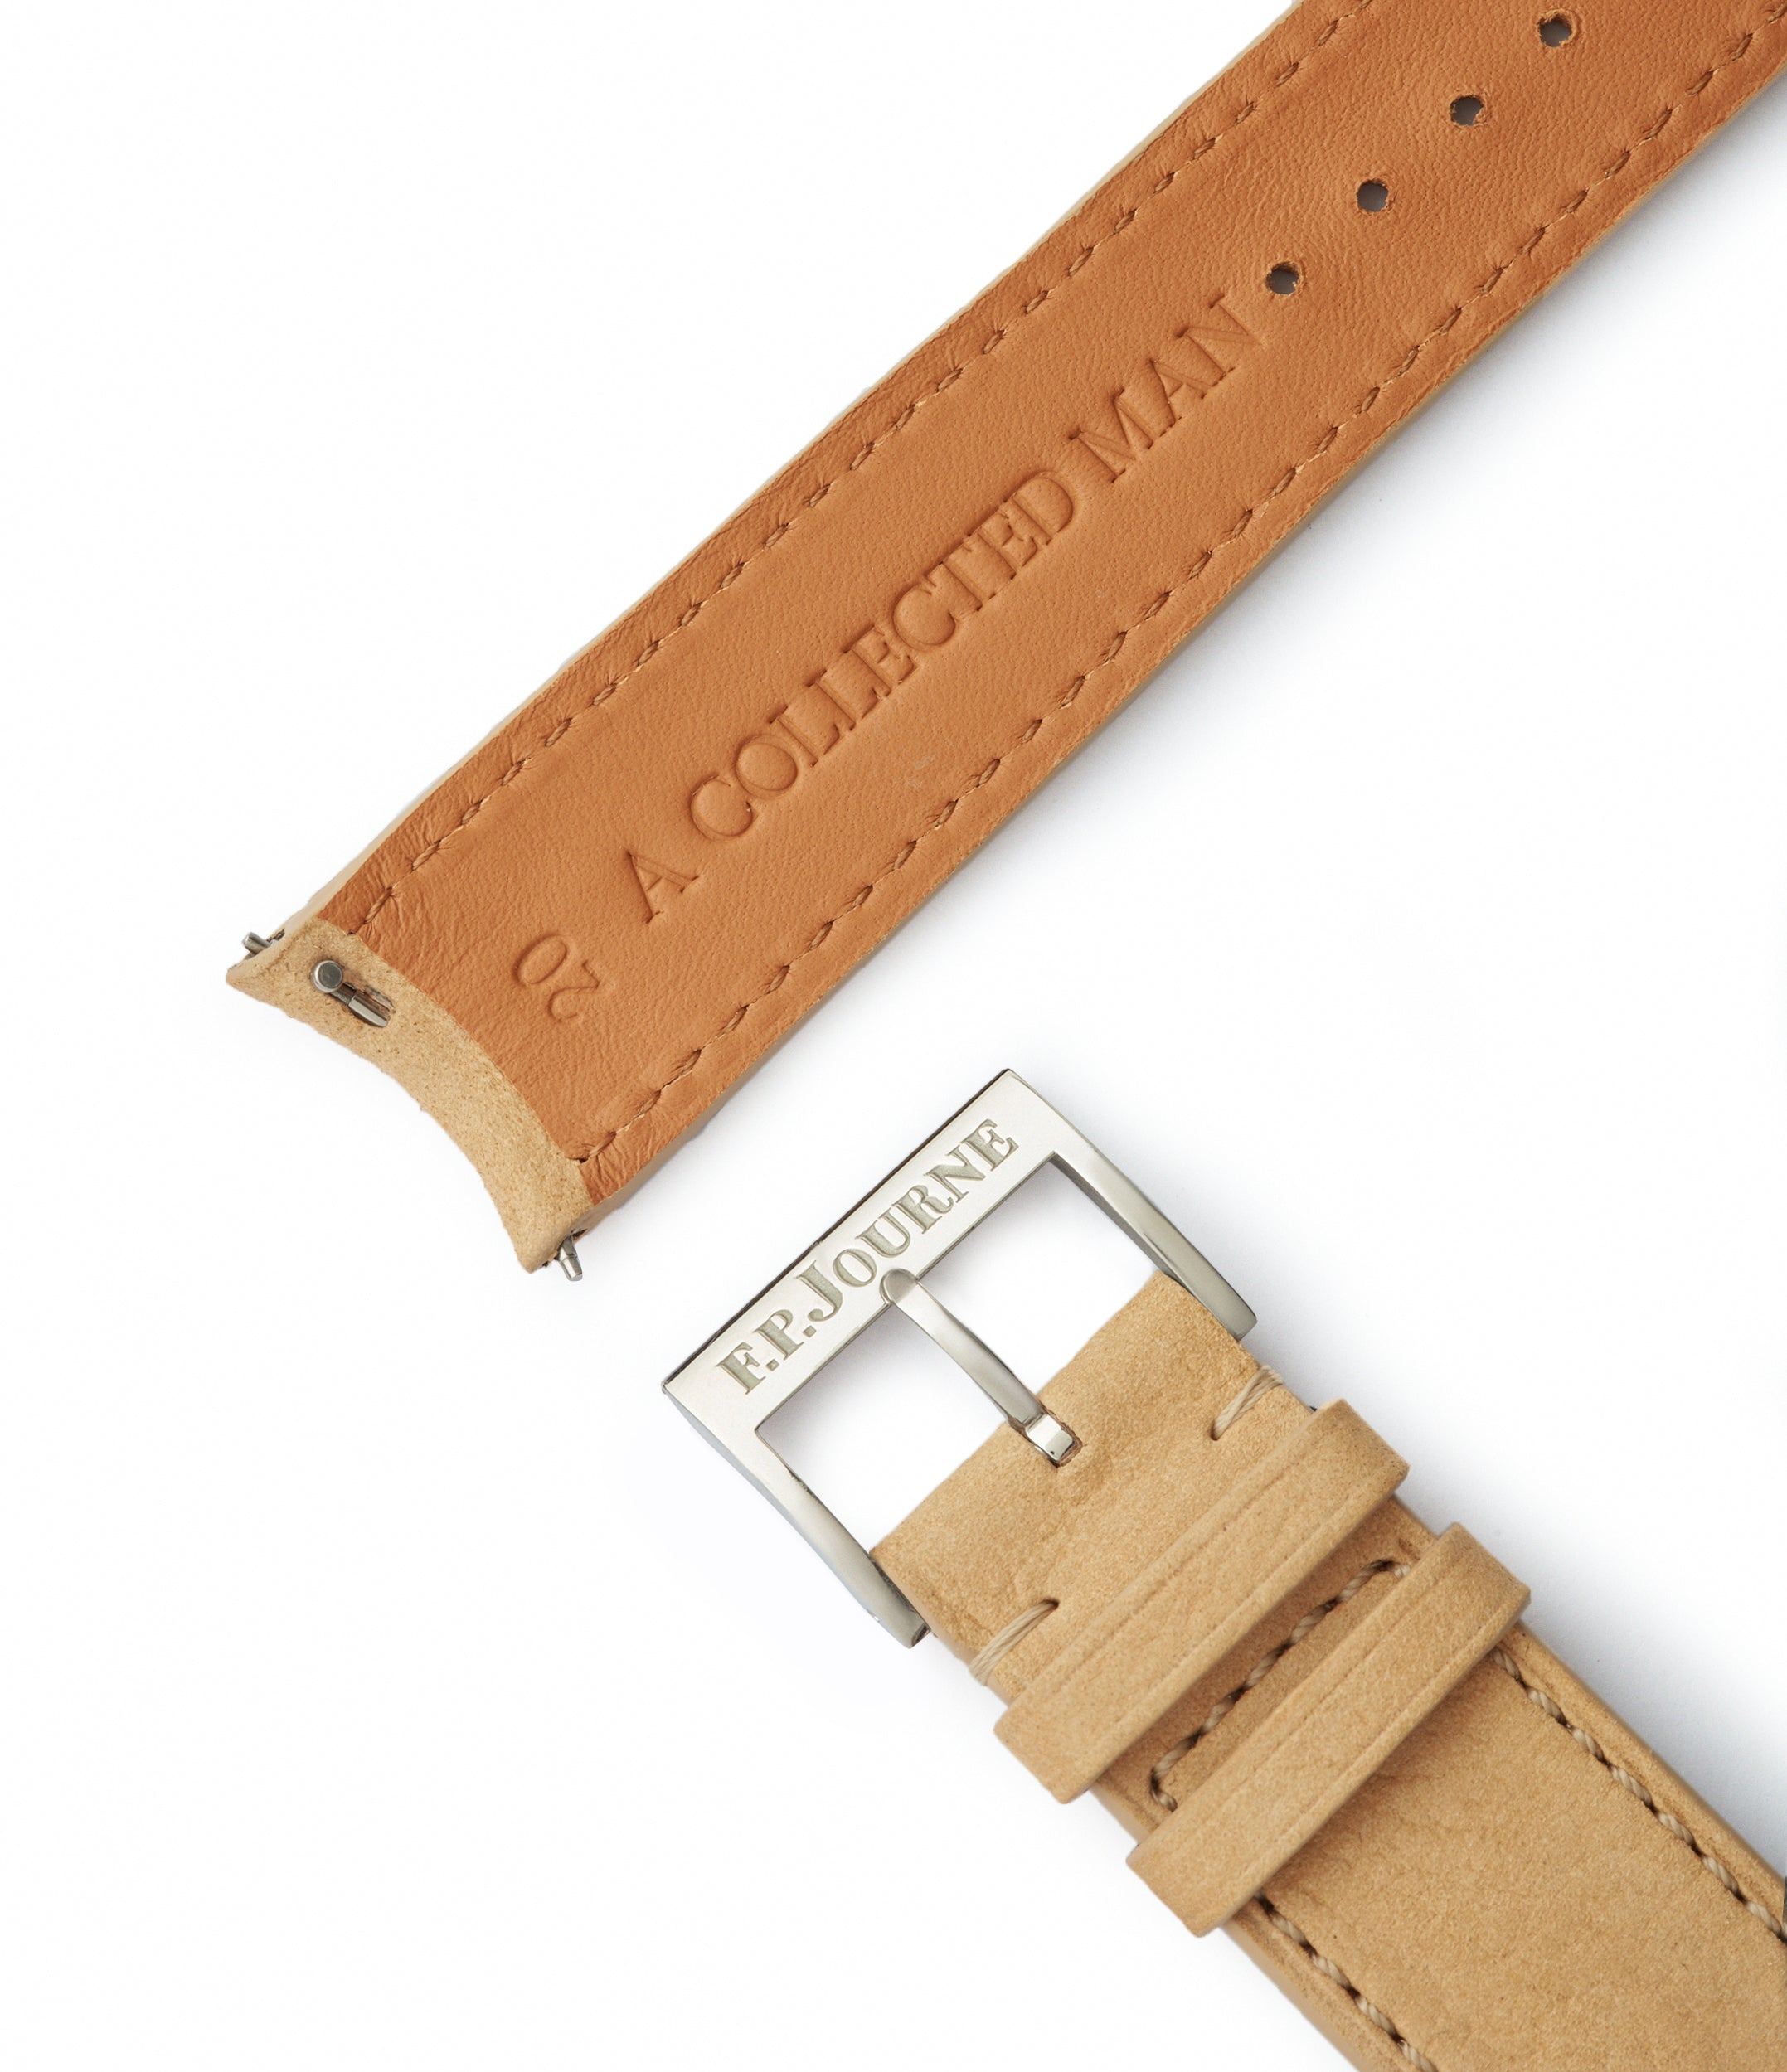 order Capri 20x19mm curved F. P. Journe-sized sand nubuck leather watch strap for sale online at A Collected Man London